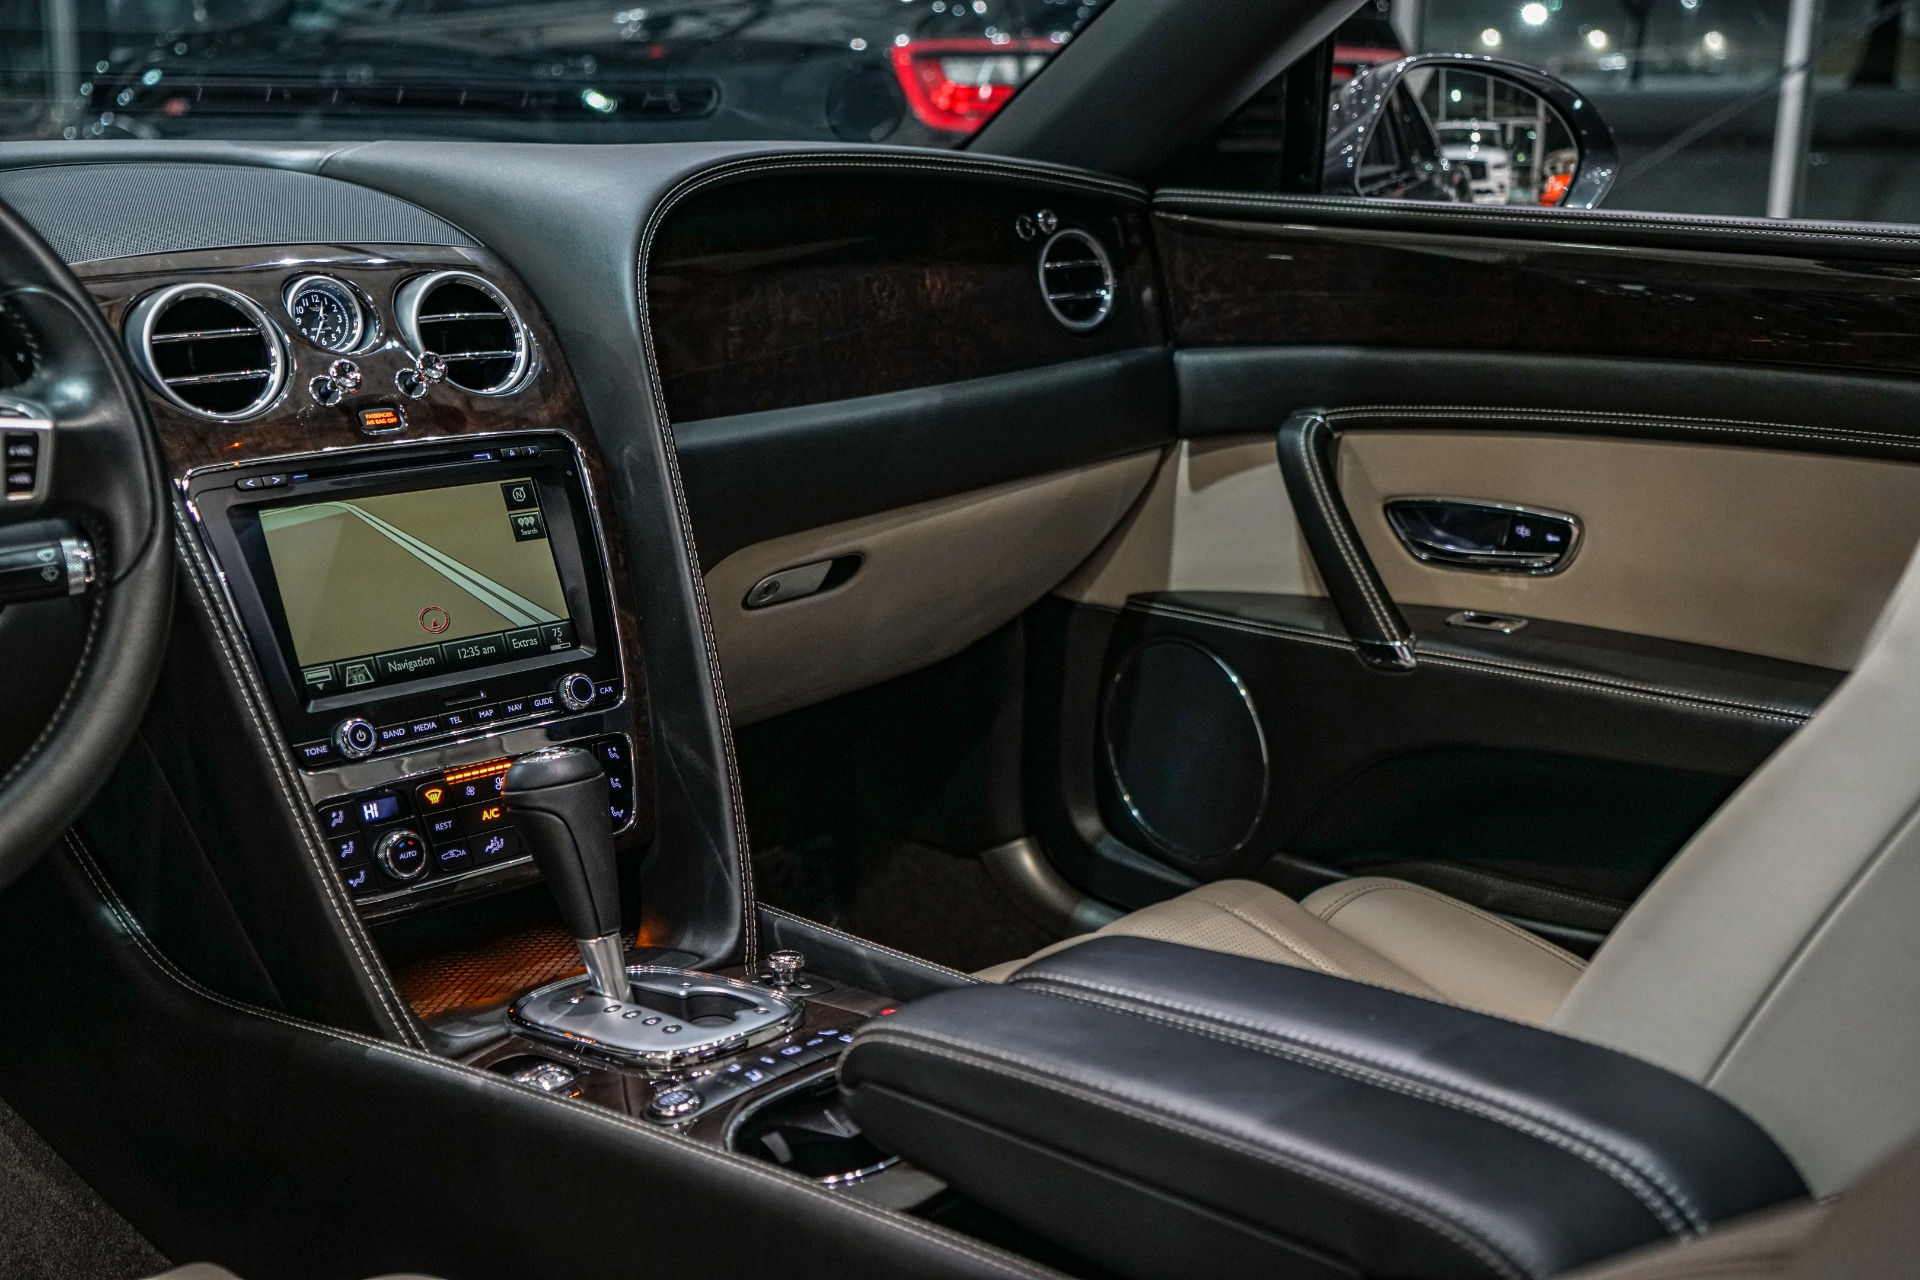 Used-2014-Bentley-Flying-Spur-CONTRAST-STICTHING-REAR-VIEW-CAMERA-PORTLAND-INTERIOR